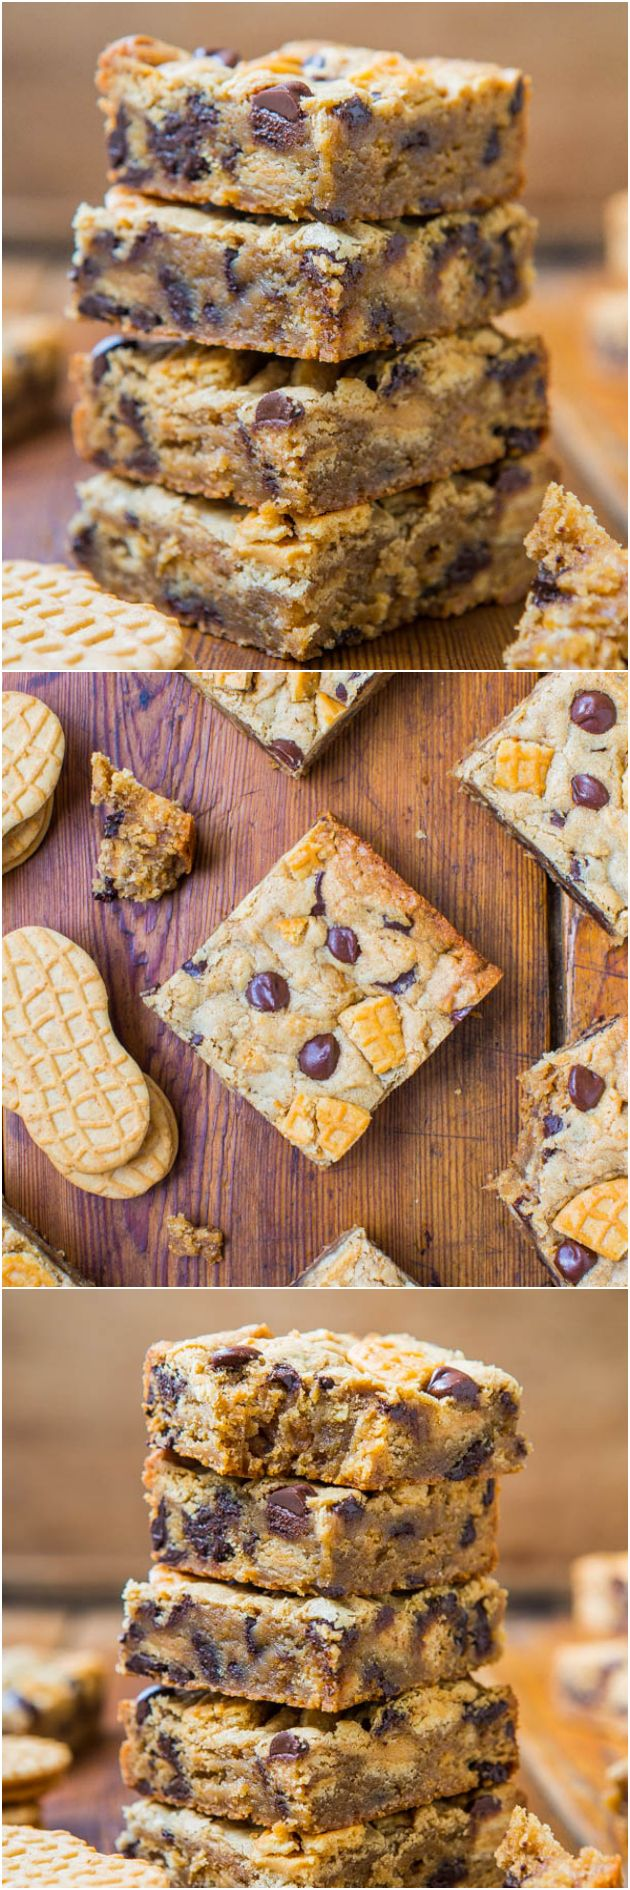 Peanut Butter Chocolate Chip Nutter Butter Bars - Soft bars loaded with chocolate and Nutter Butters! You'll be in PB HEAVEN!